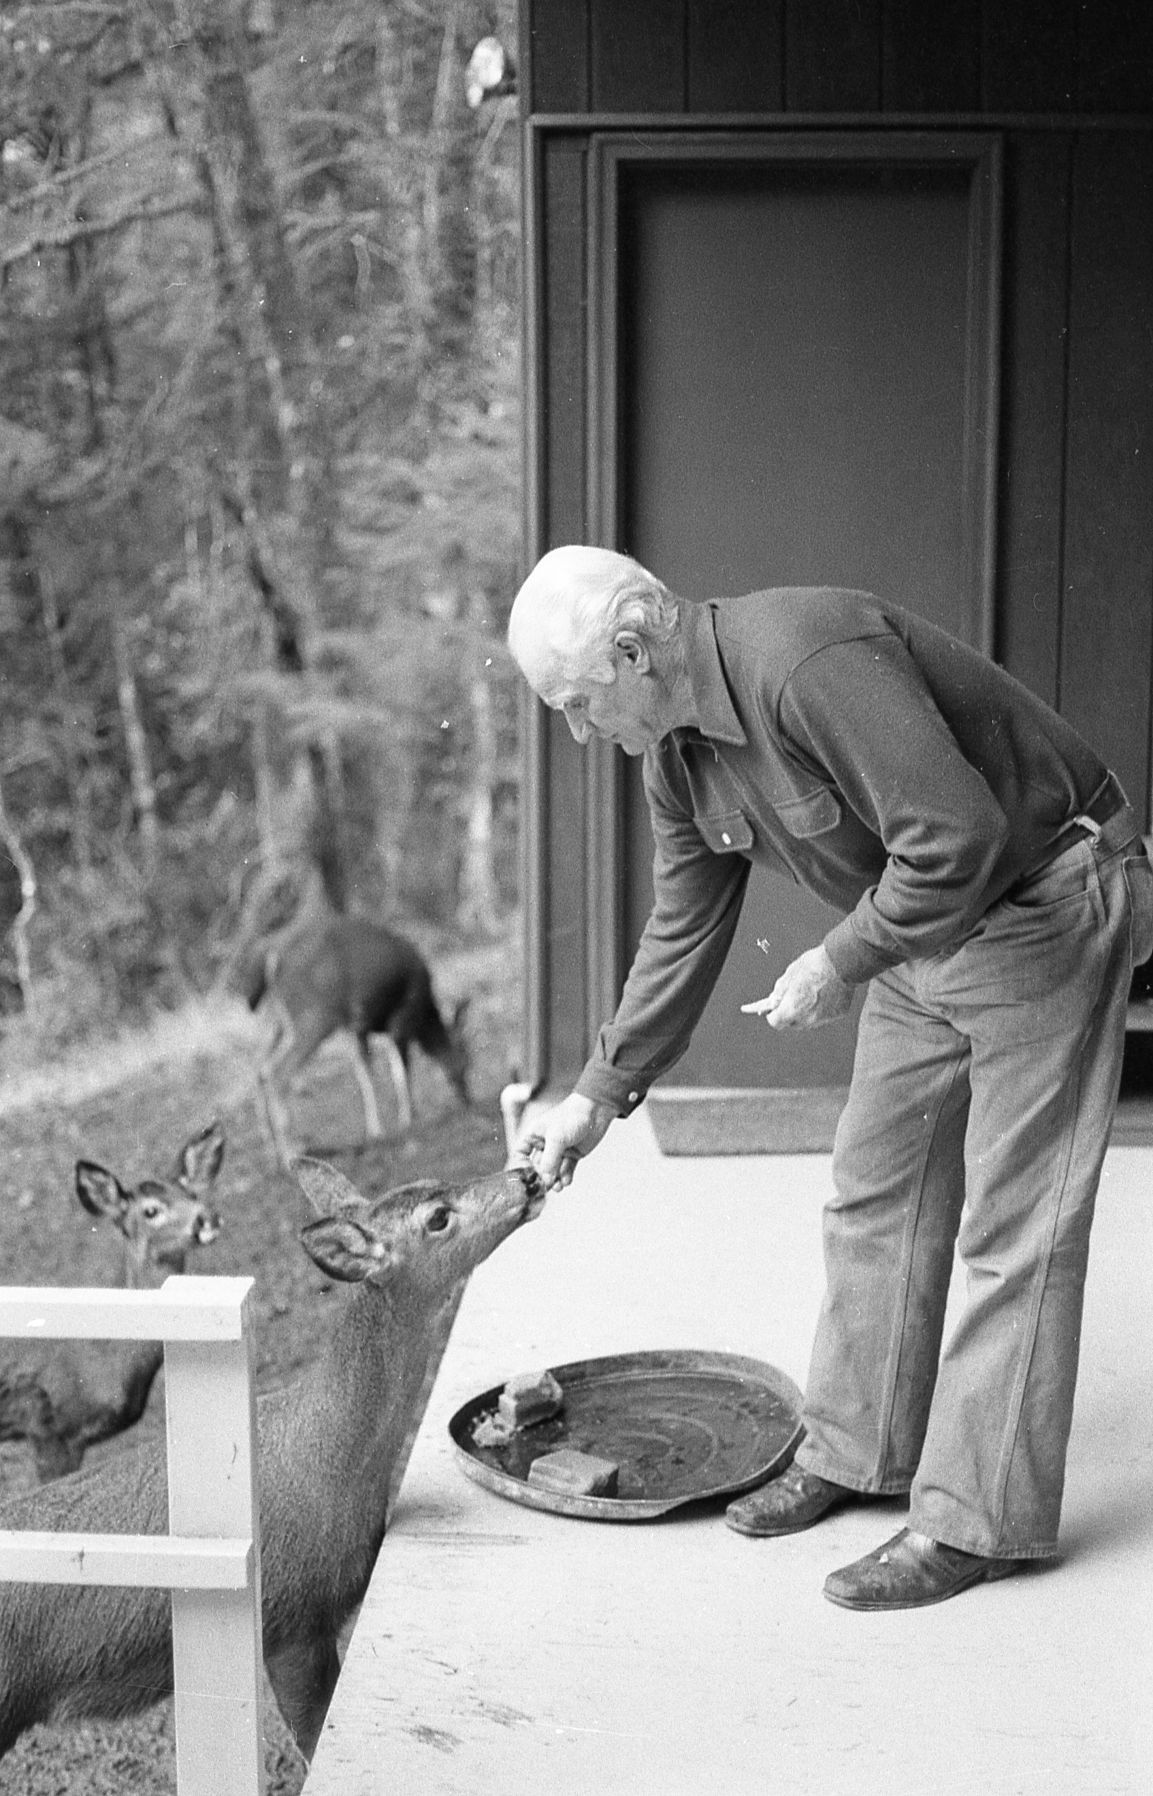 MLB baseball player Bobby Doerr feeding deer at his house at Agness, early 1980s